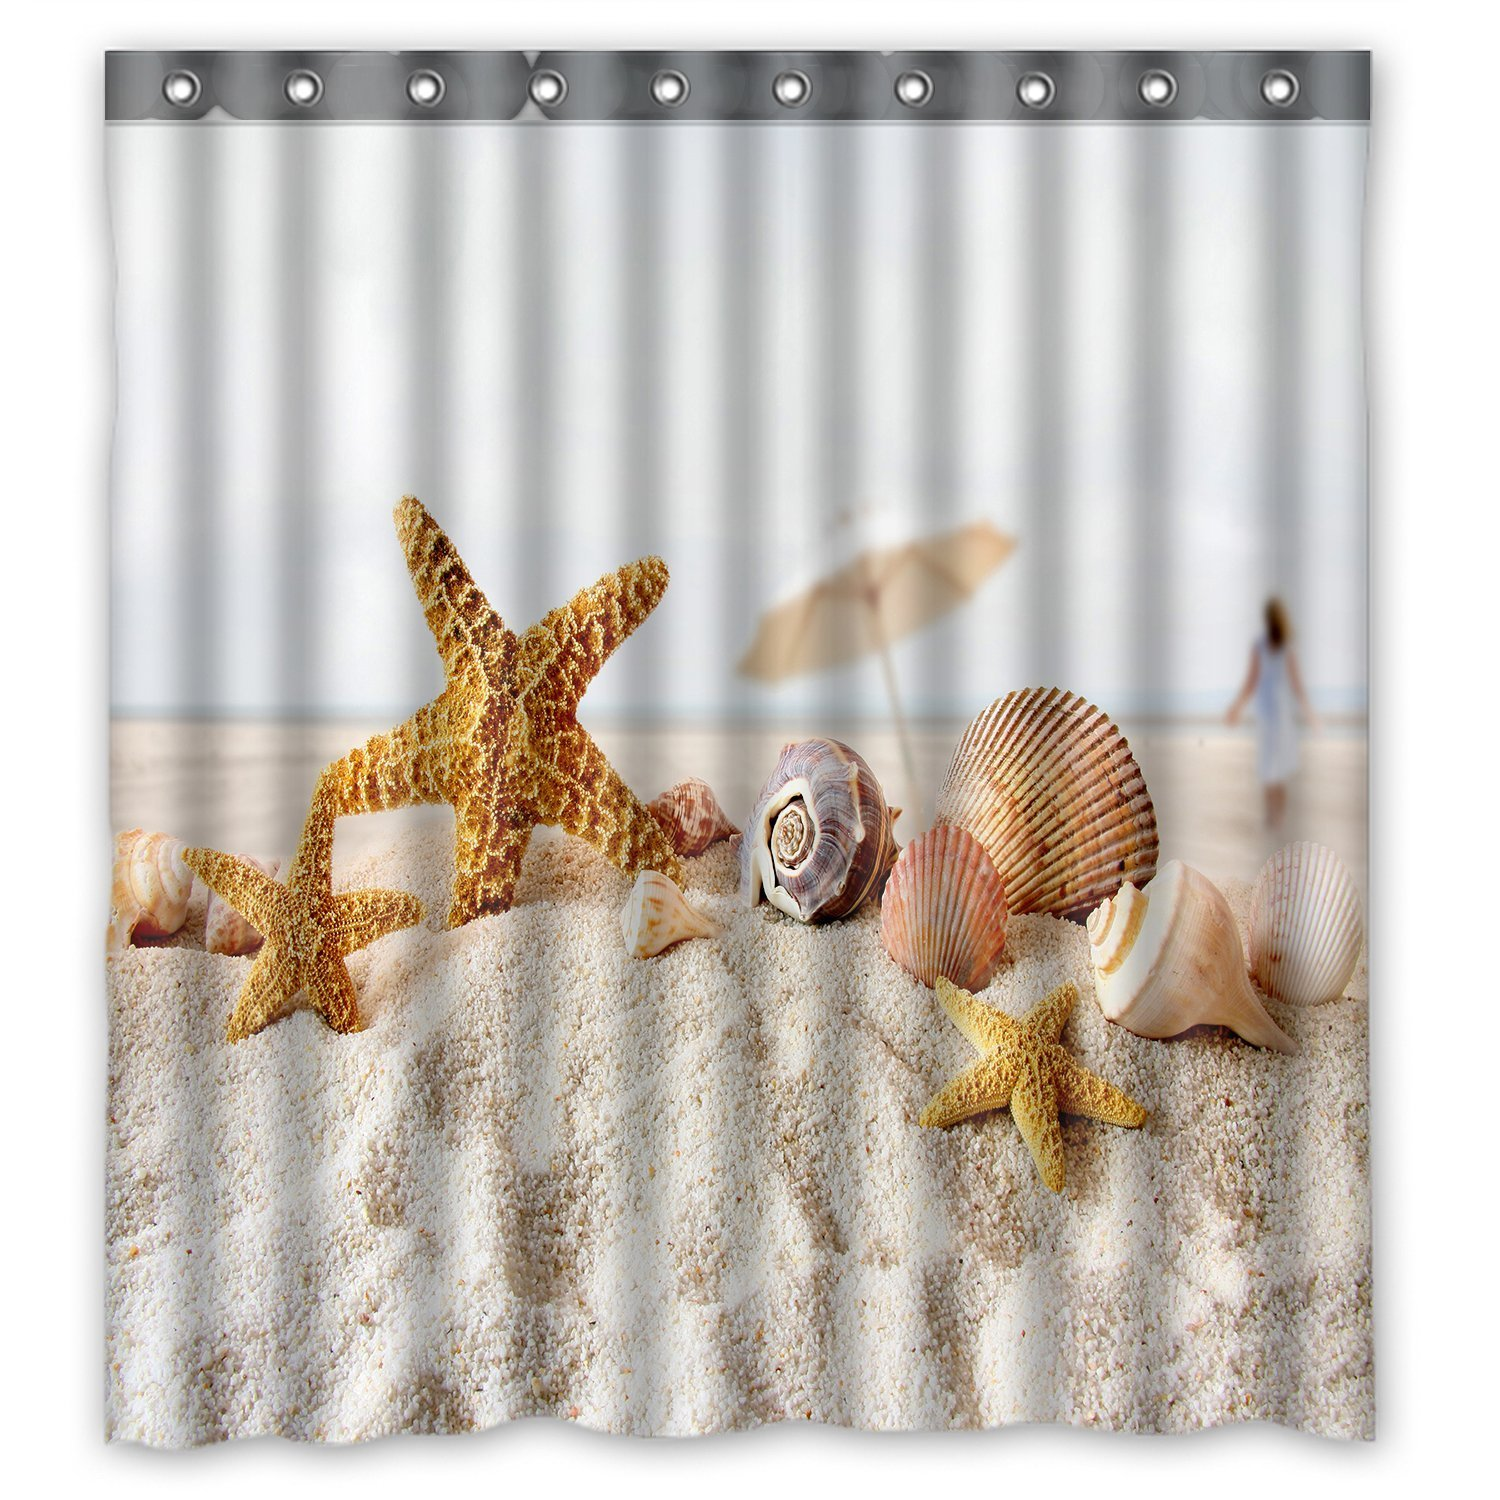 Star Fish Sea Shell Beach Window Curtain With Hooks By A-COUNT (1 Panel 52''x63'')